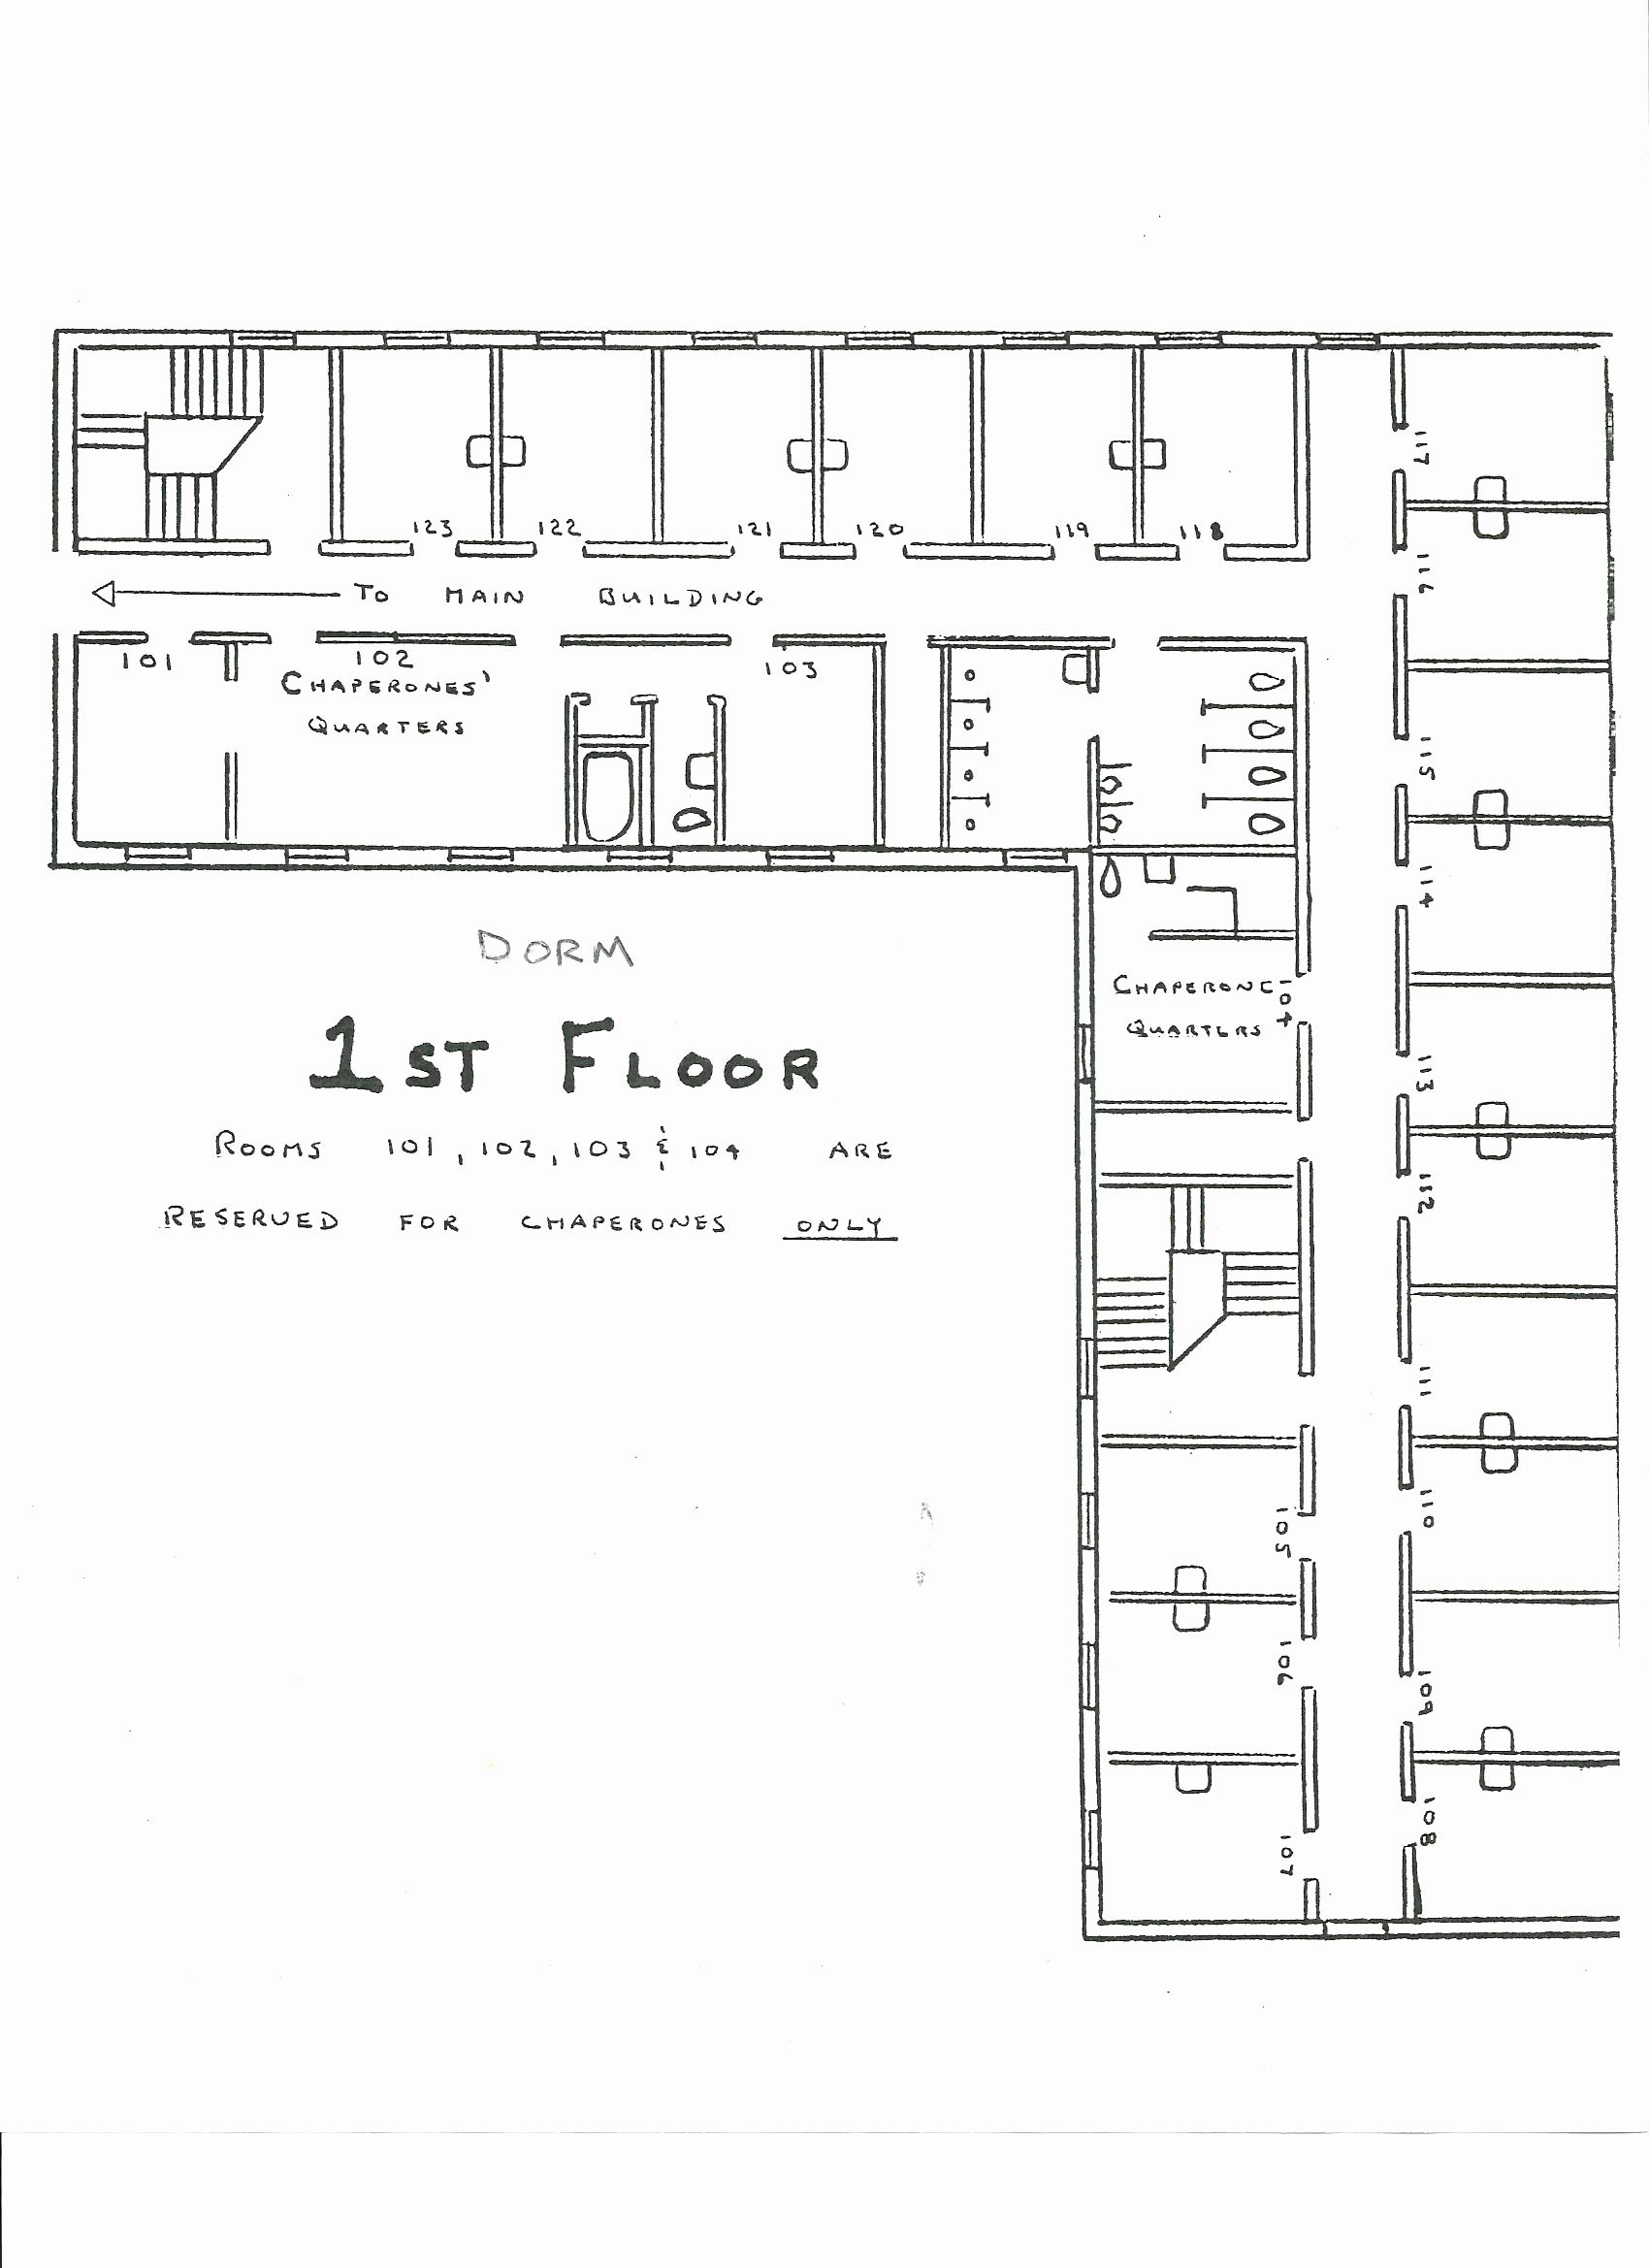 hardwood floor maintenance crossword clue of floor crossword clue barn house floor plans elegant cottage house in floor crossword clue dance floor plan new cheap floor plans for homes fresh 25 unique